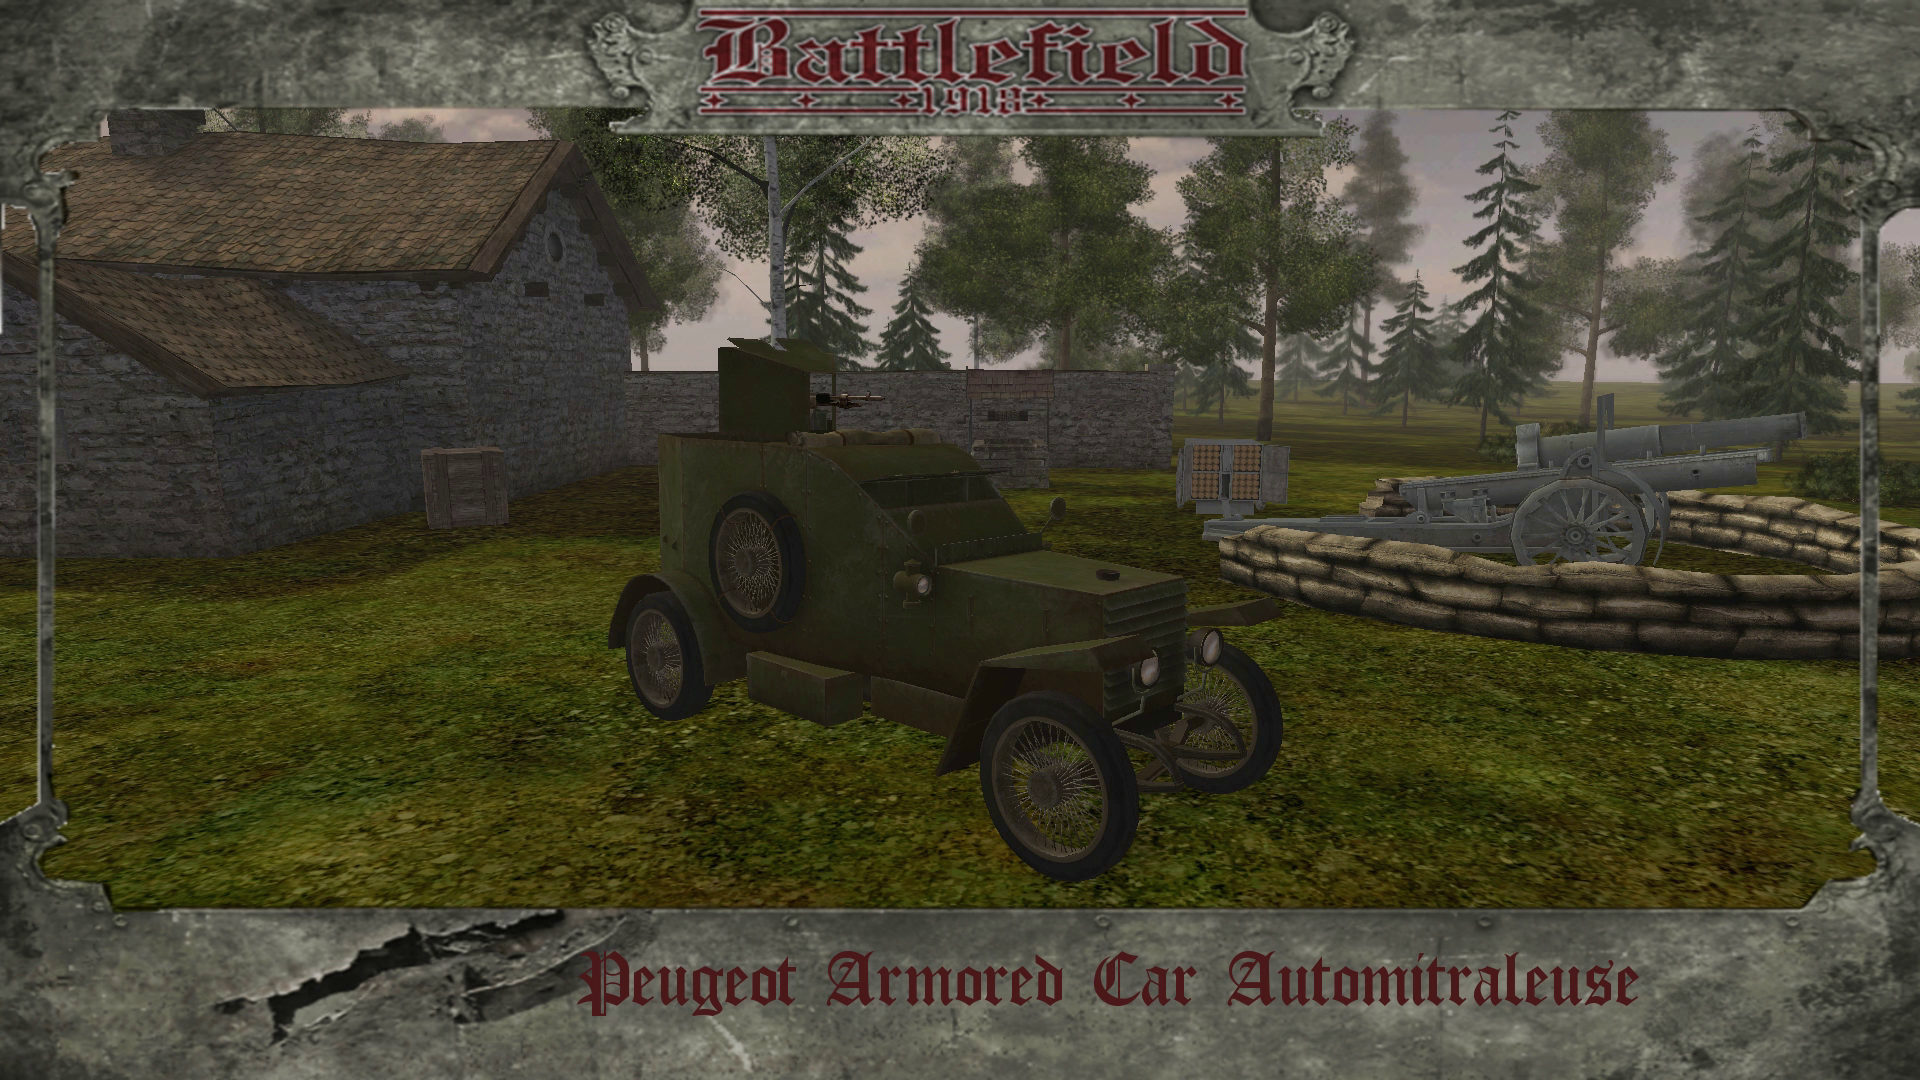 Peugeot Armored Car MG